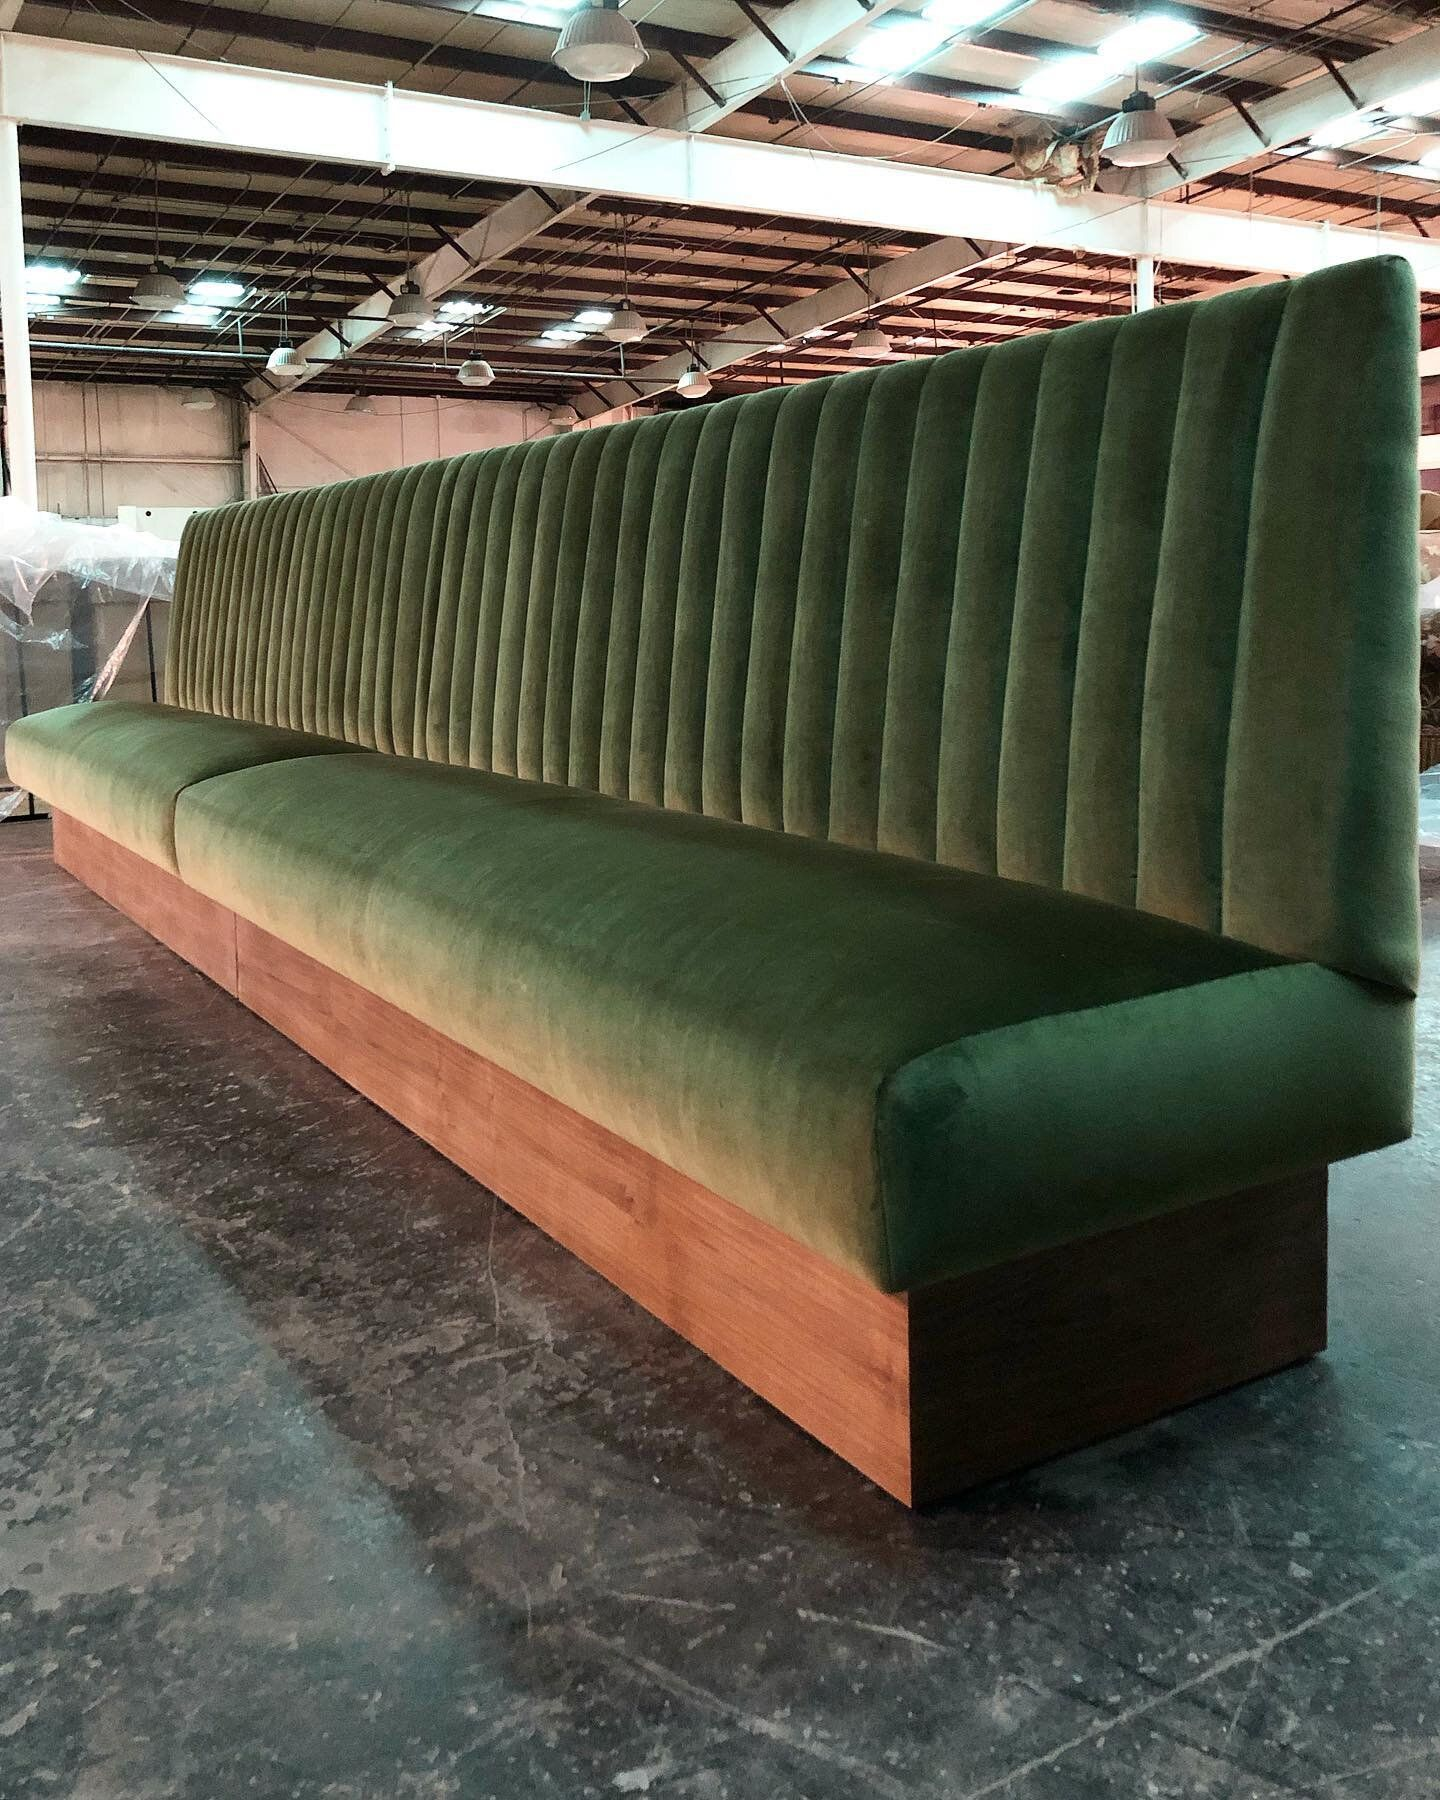 Corn Upholstery - Corn Upholstery Built-In Seating, Custom Booths, Banquette Seating, and Hospitality Furniture